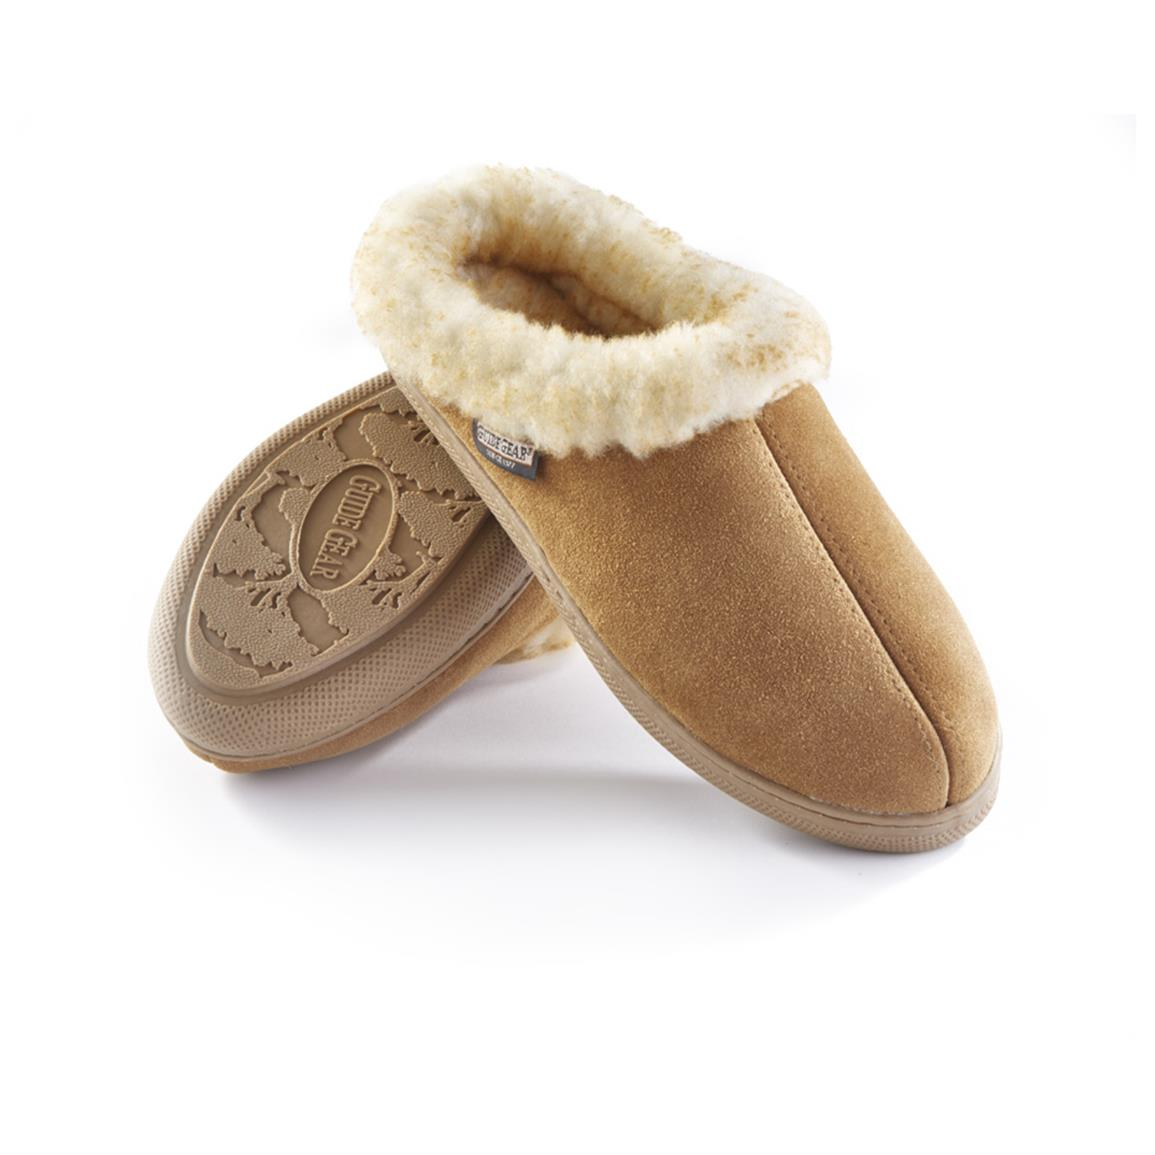 Guide Gear Women's Suede Clog Slippers, Cinnamon